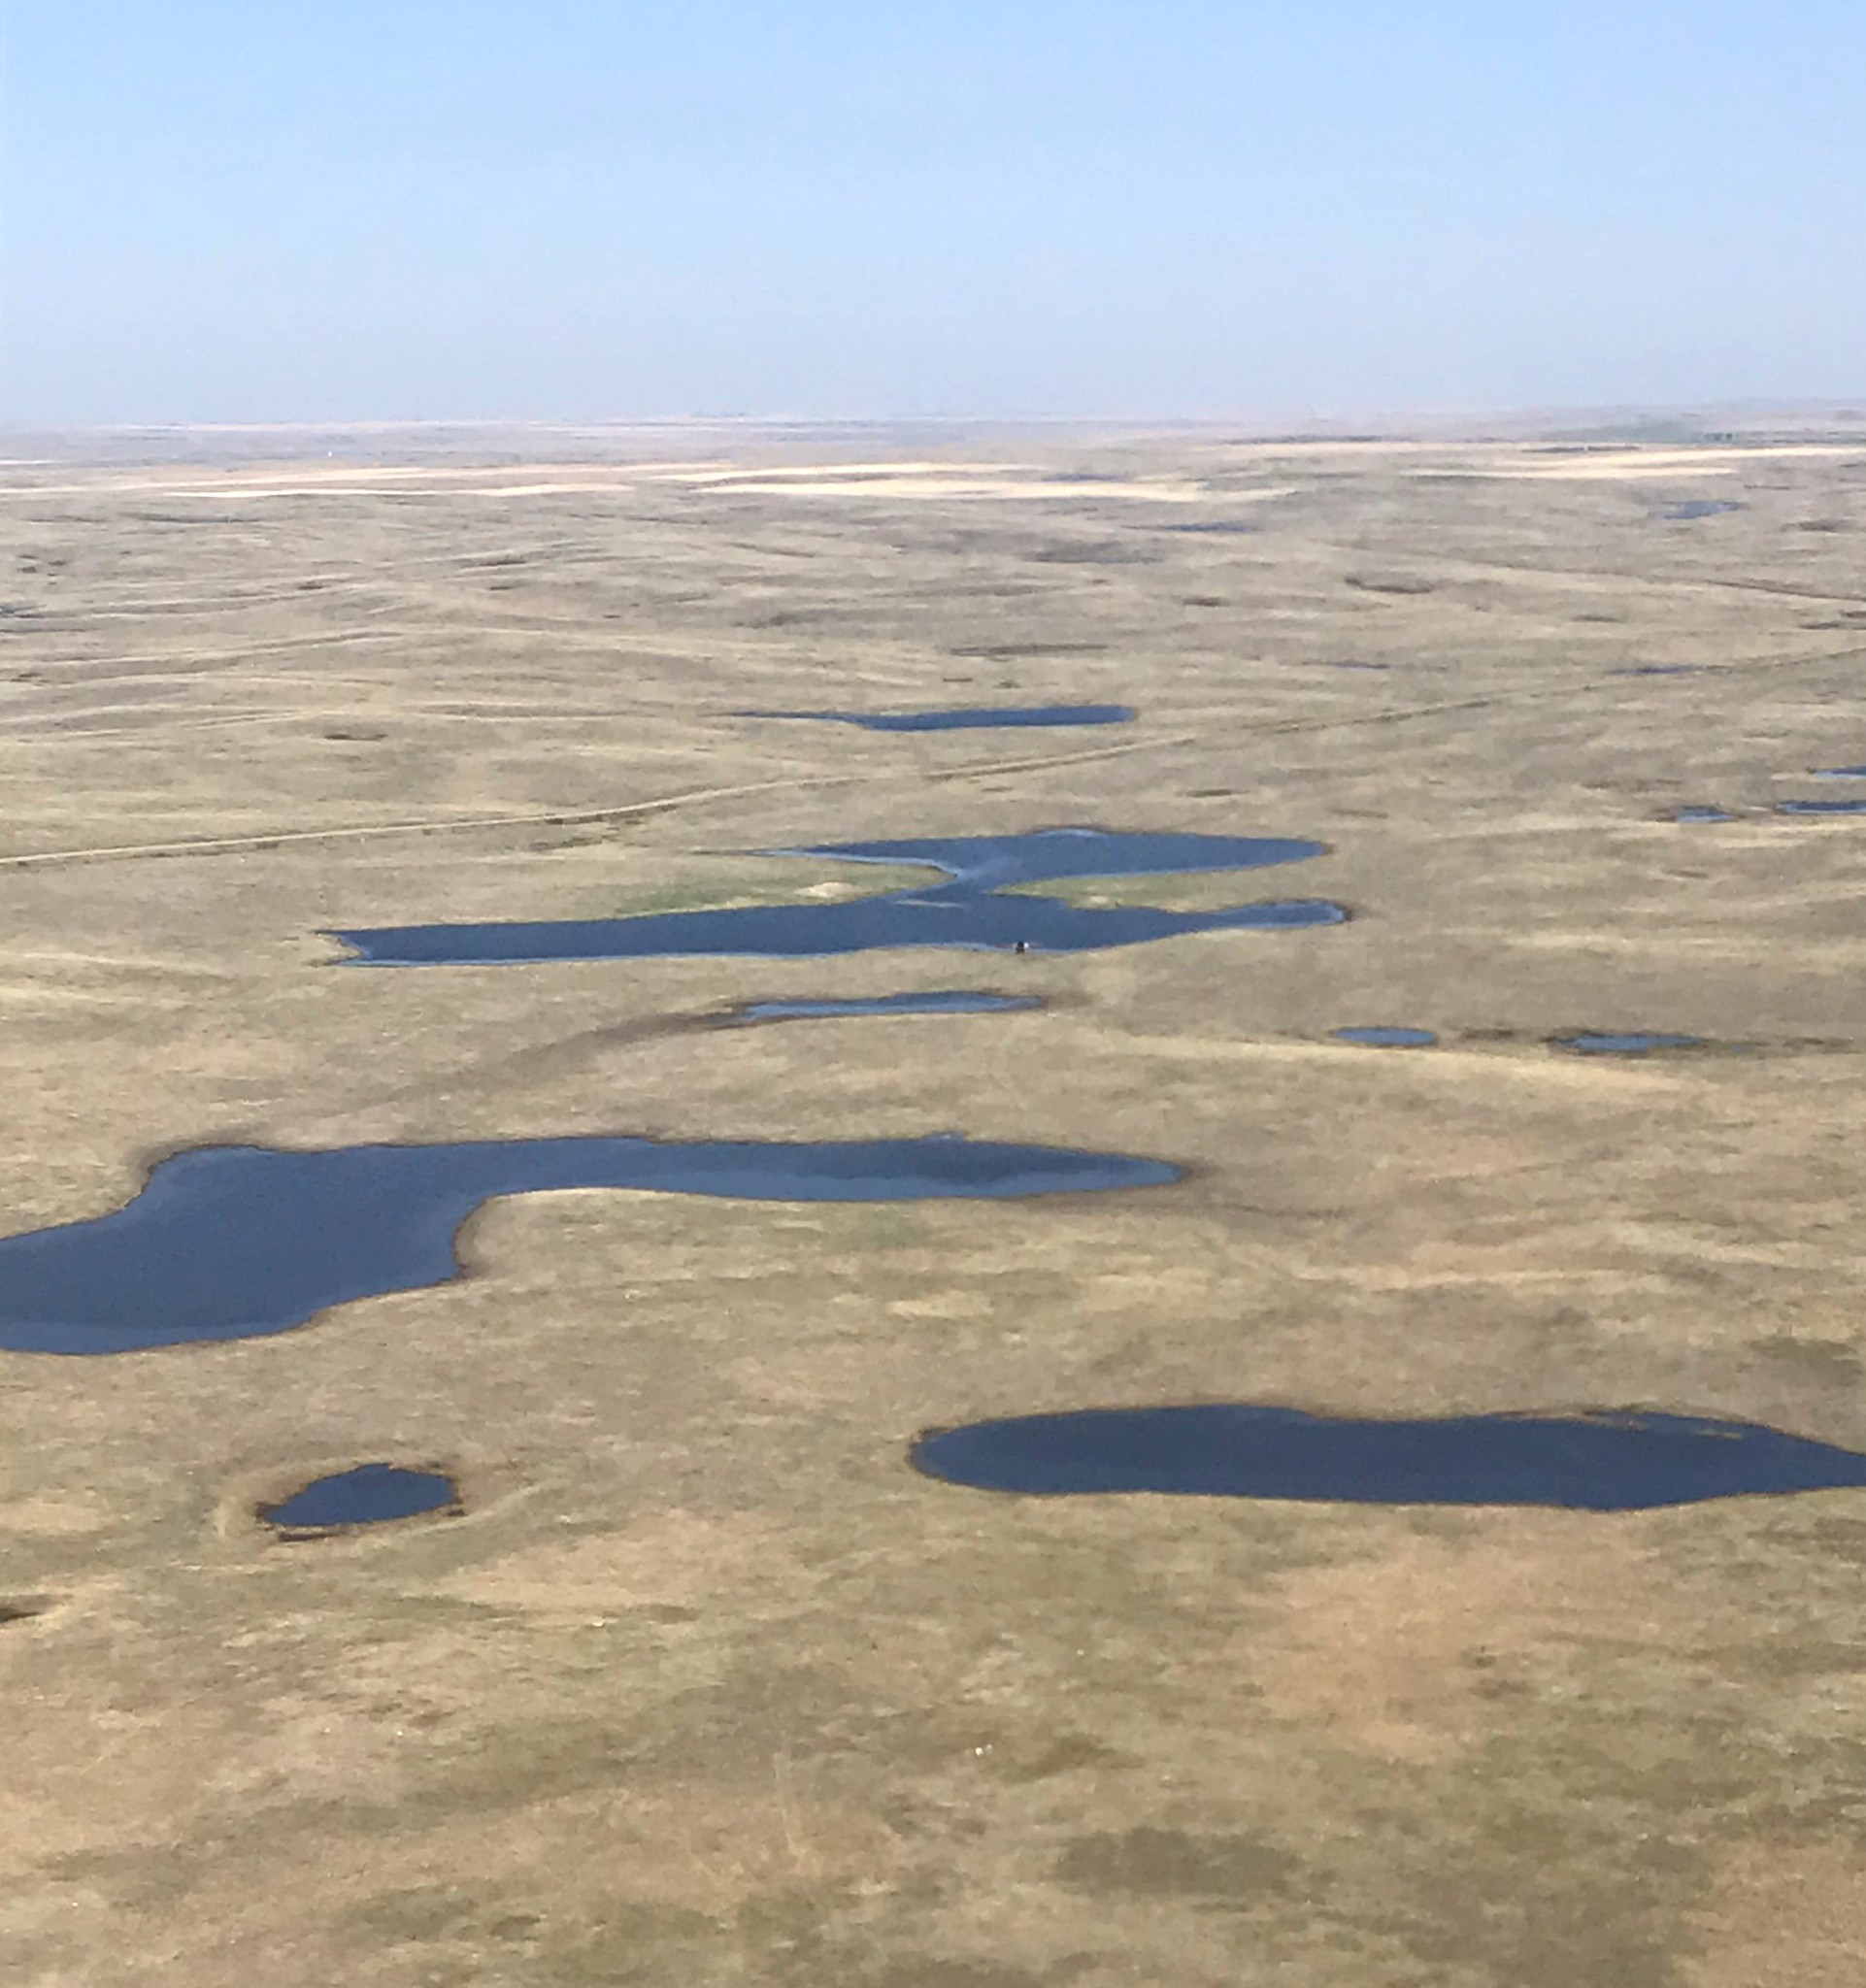 The short-grass prairie area west of Empress, Alberta, this spring has some of the best wetland and upland habitat conditions in recent memory. Most of the wetland basins in this area have water in them, with many of them full. (USF&WS photo by Jim Bredy)